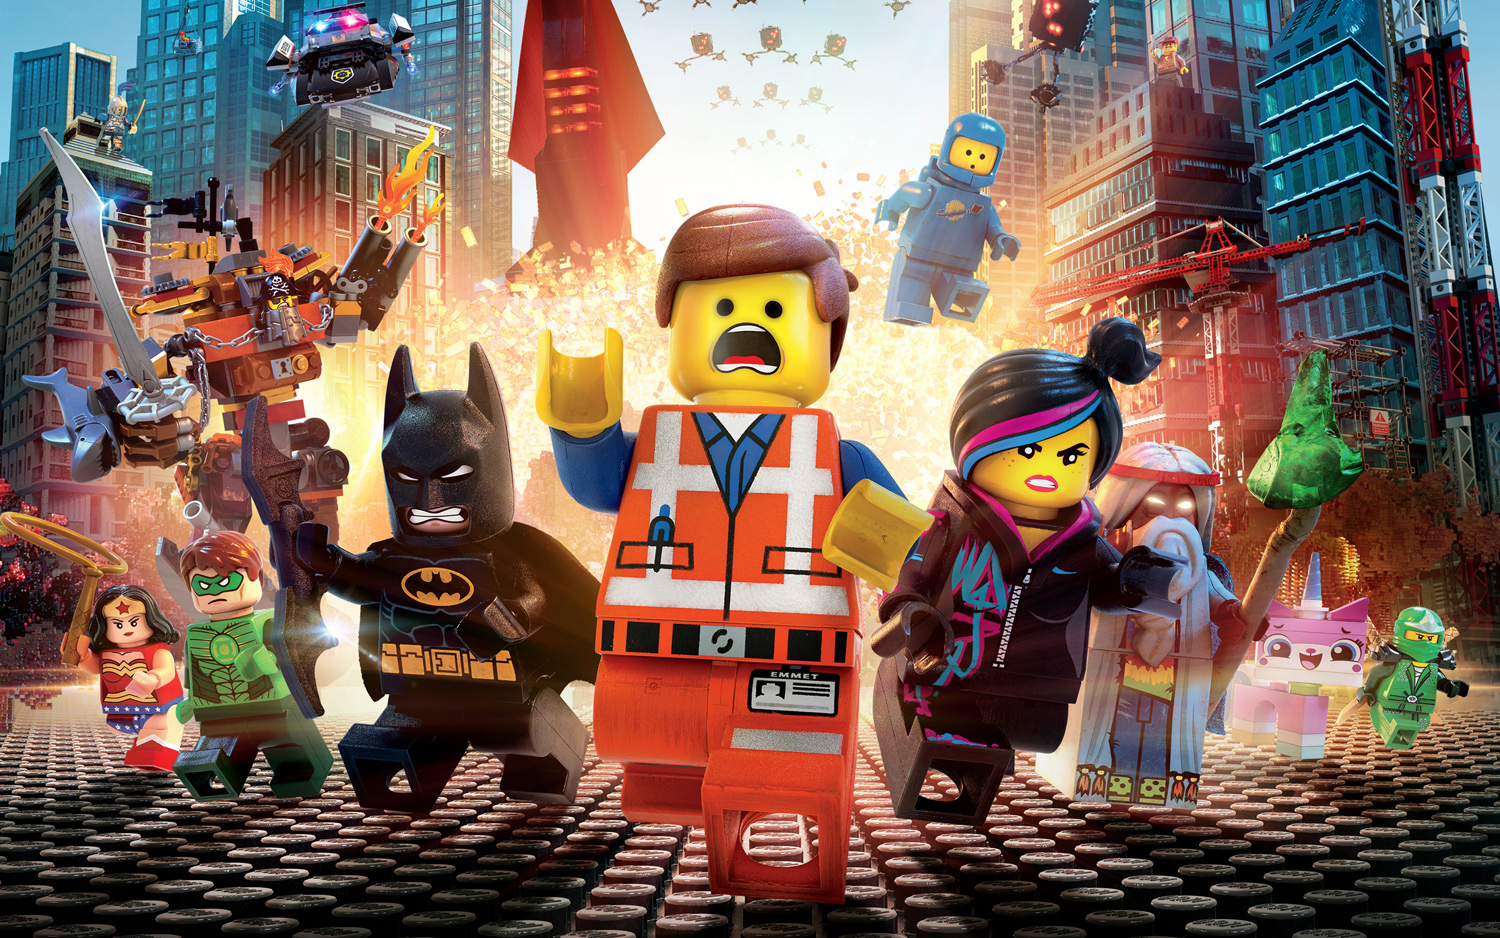 Warner Brothers' The Lego Movie explodes onto screen.